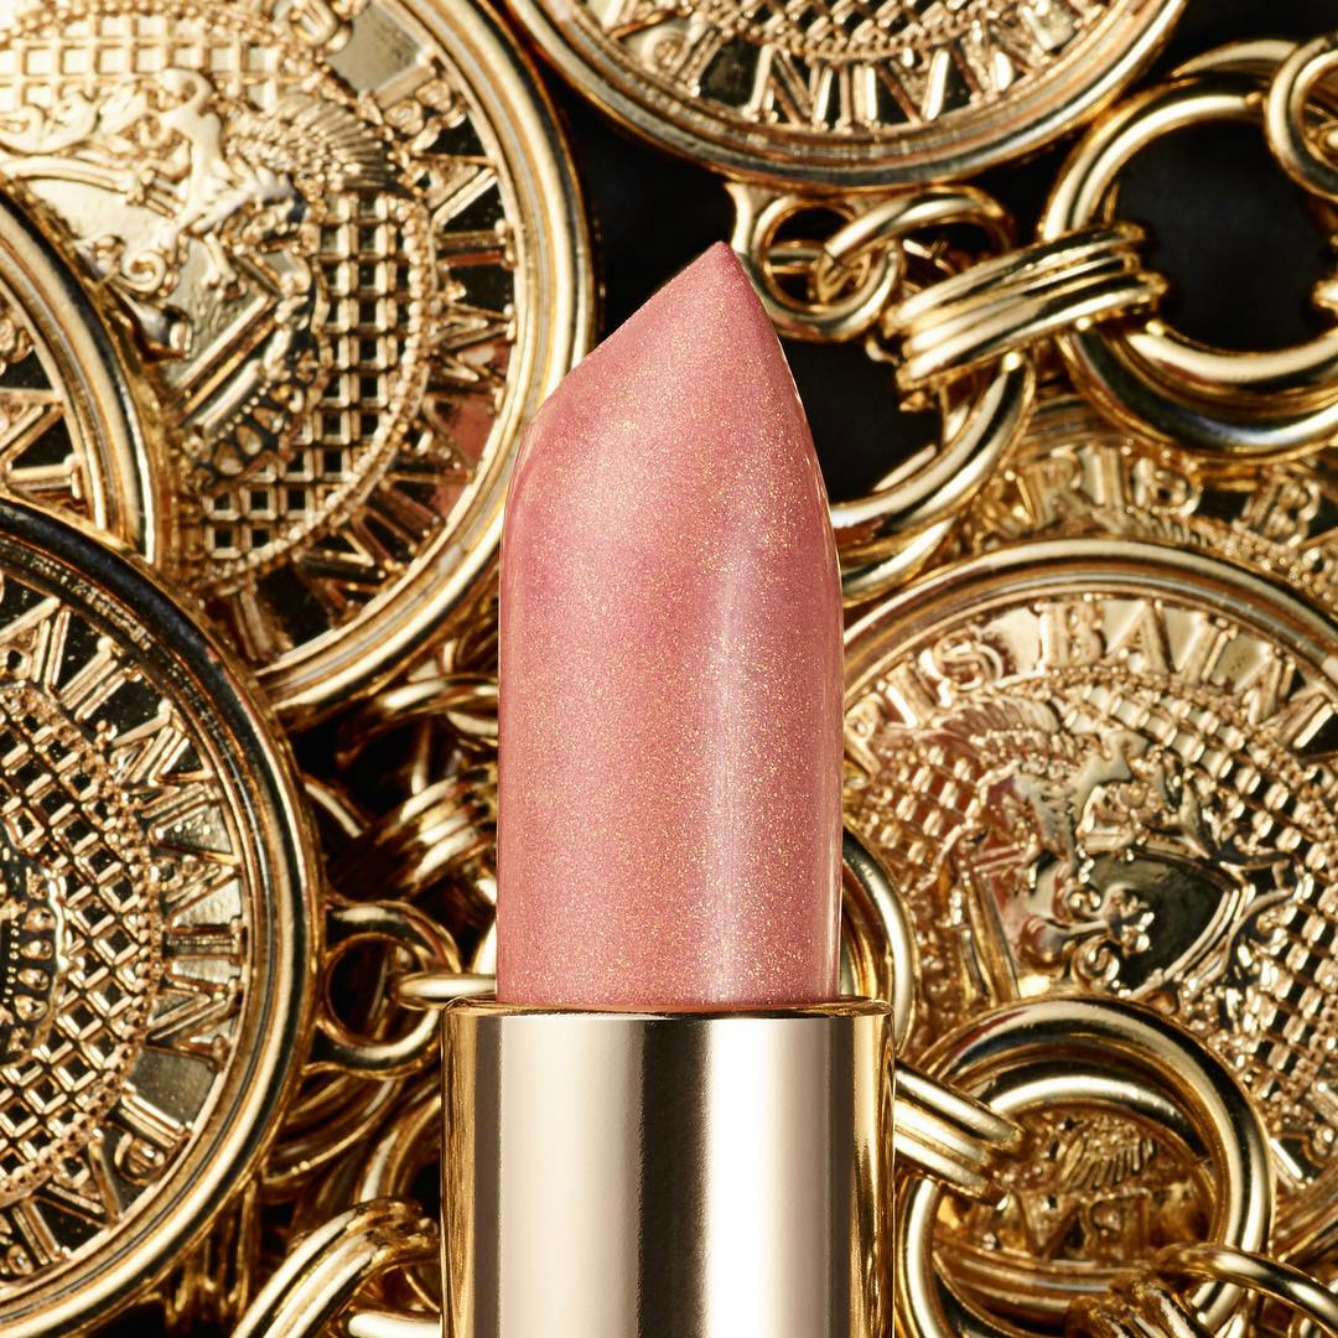 Your First Look at the L'Oréal Paris x Balmain Collab